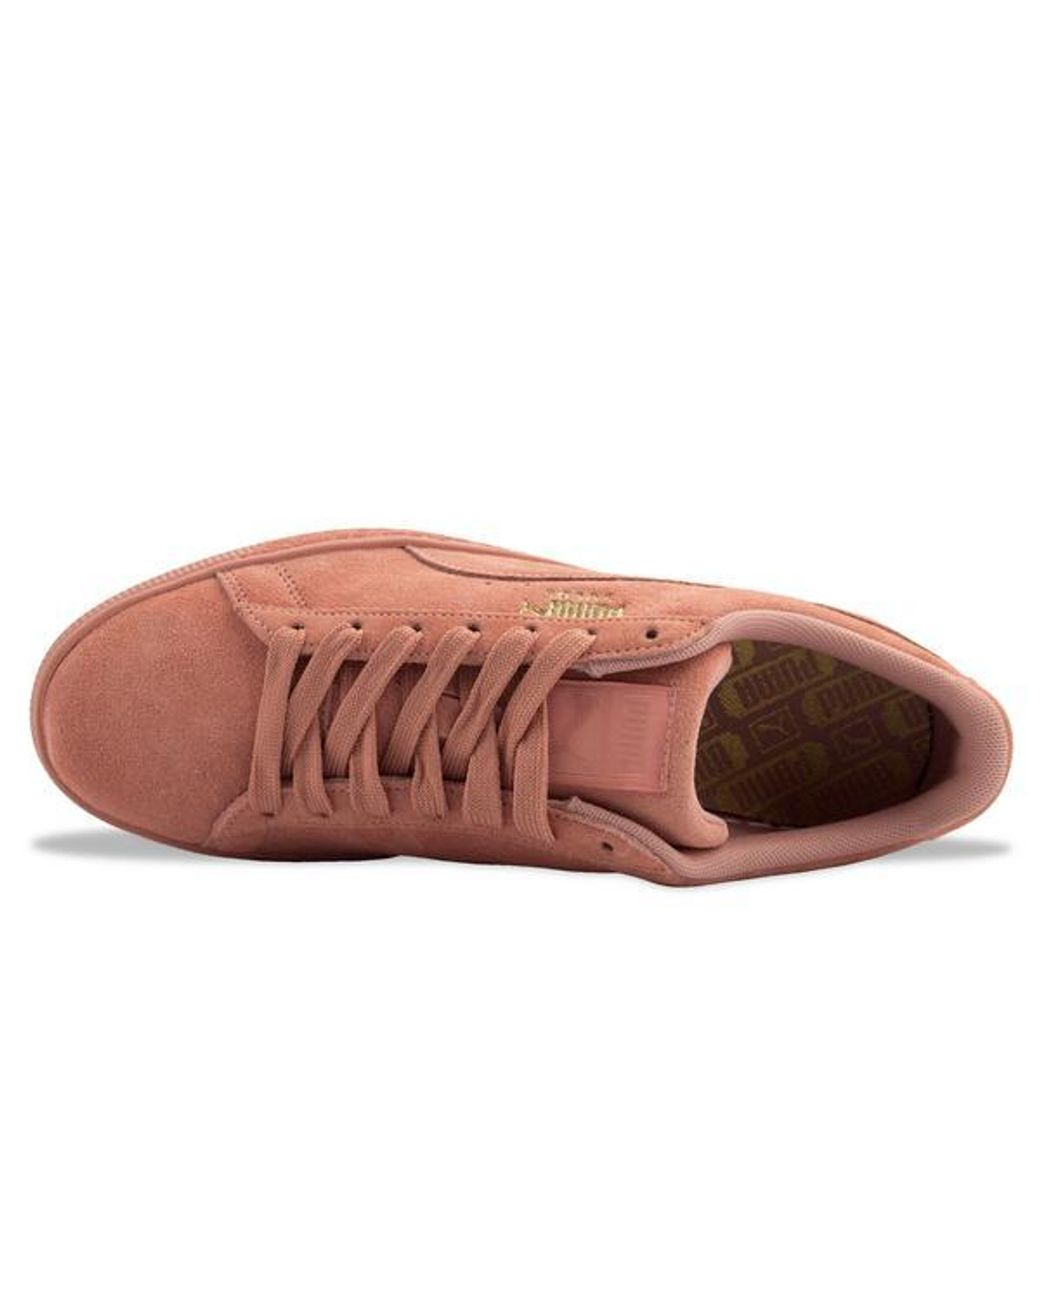 PUMA SUEDE 362595 RED//CLAY//PEBBLE//FLOWER PUMA SUEDE CLASSIC TONAL TRAINERS